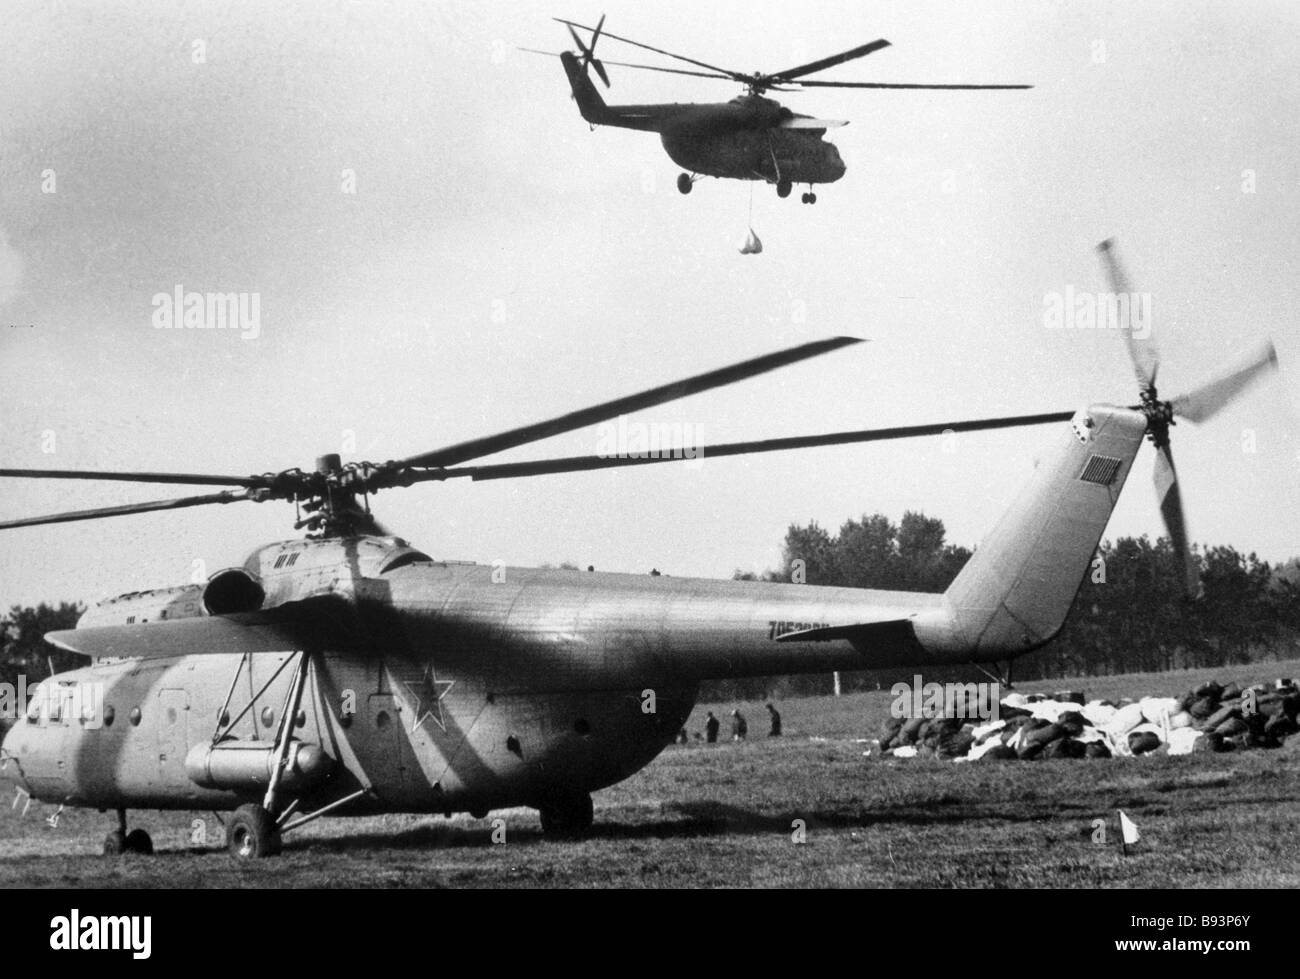 Mi 6 helicopters eliminating the consequences of the Chernobyl disaster - Stock Image